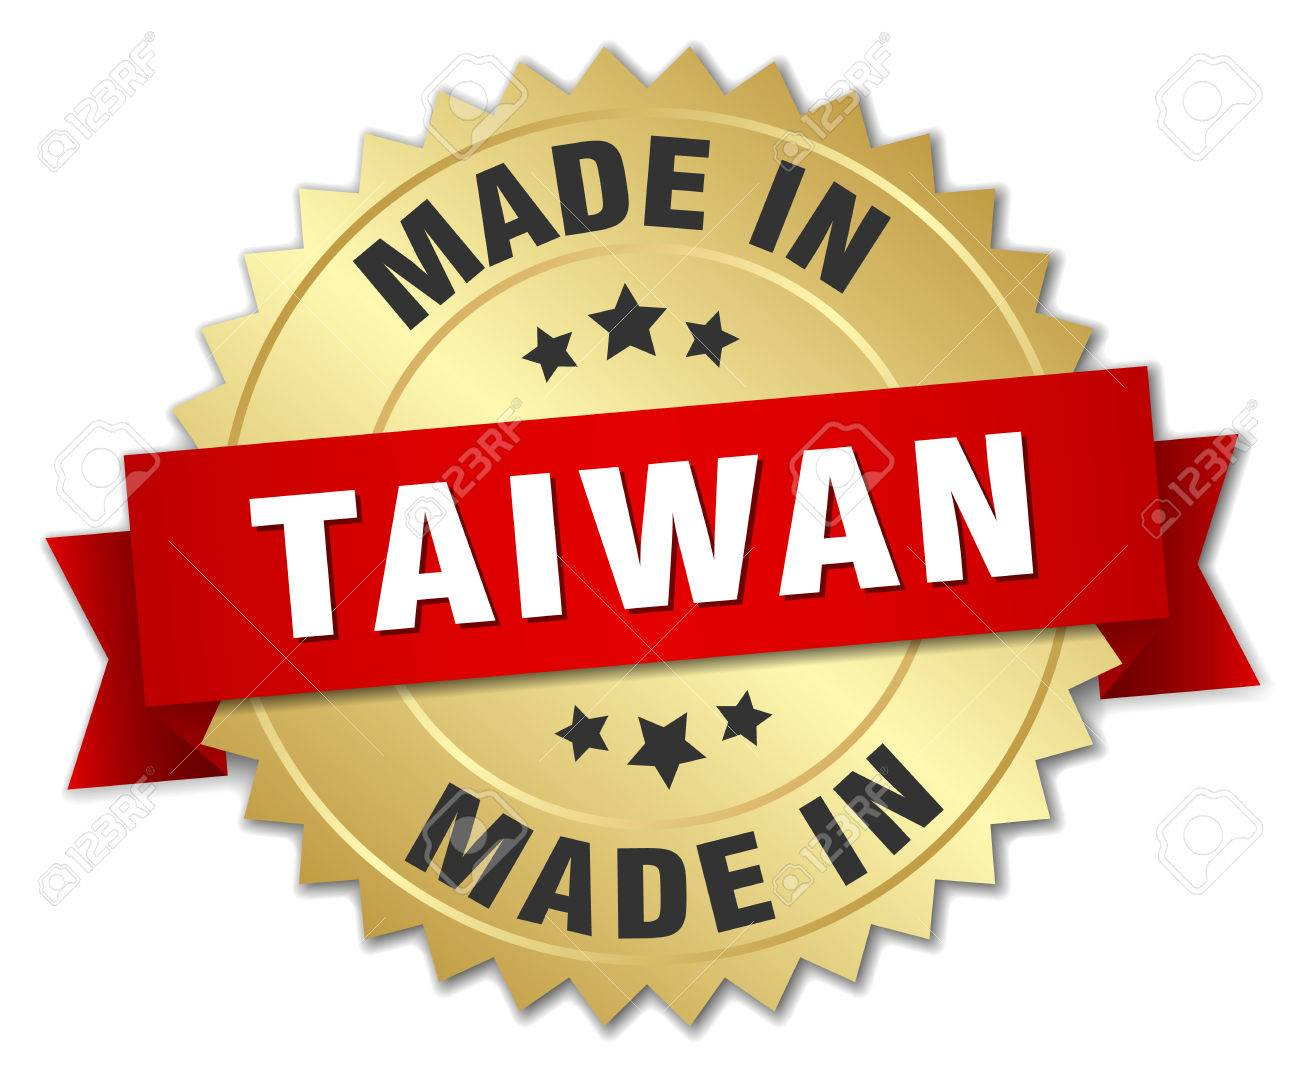 made in Taiwan gold badge with red ribbon - 45447659